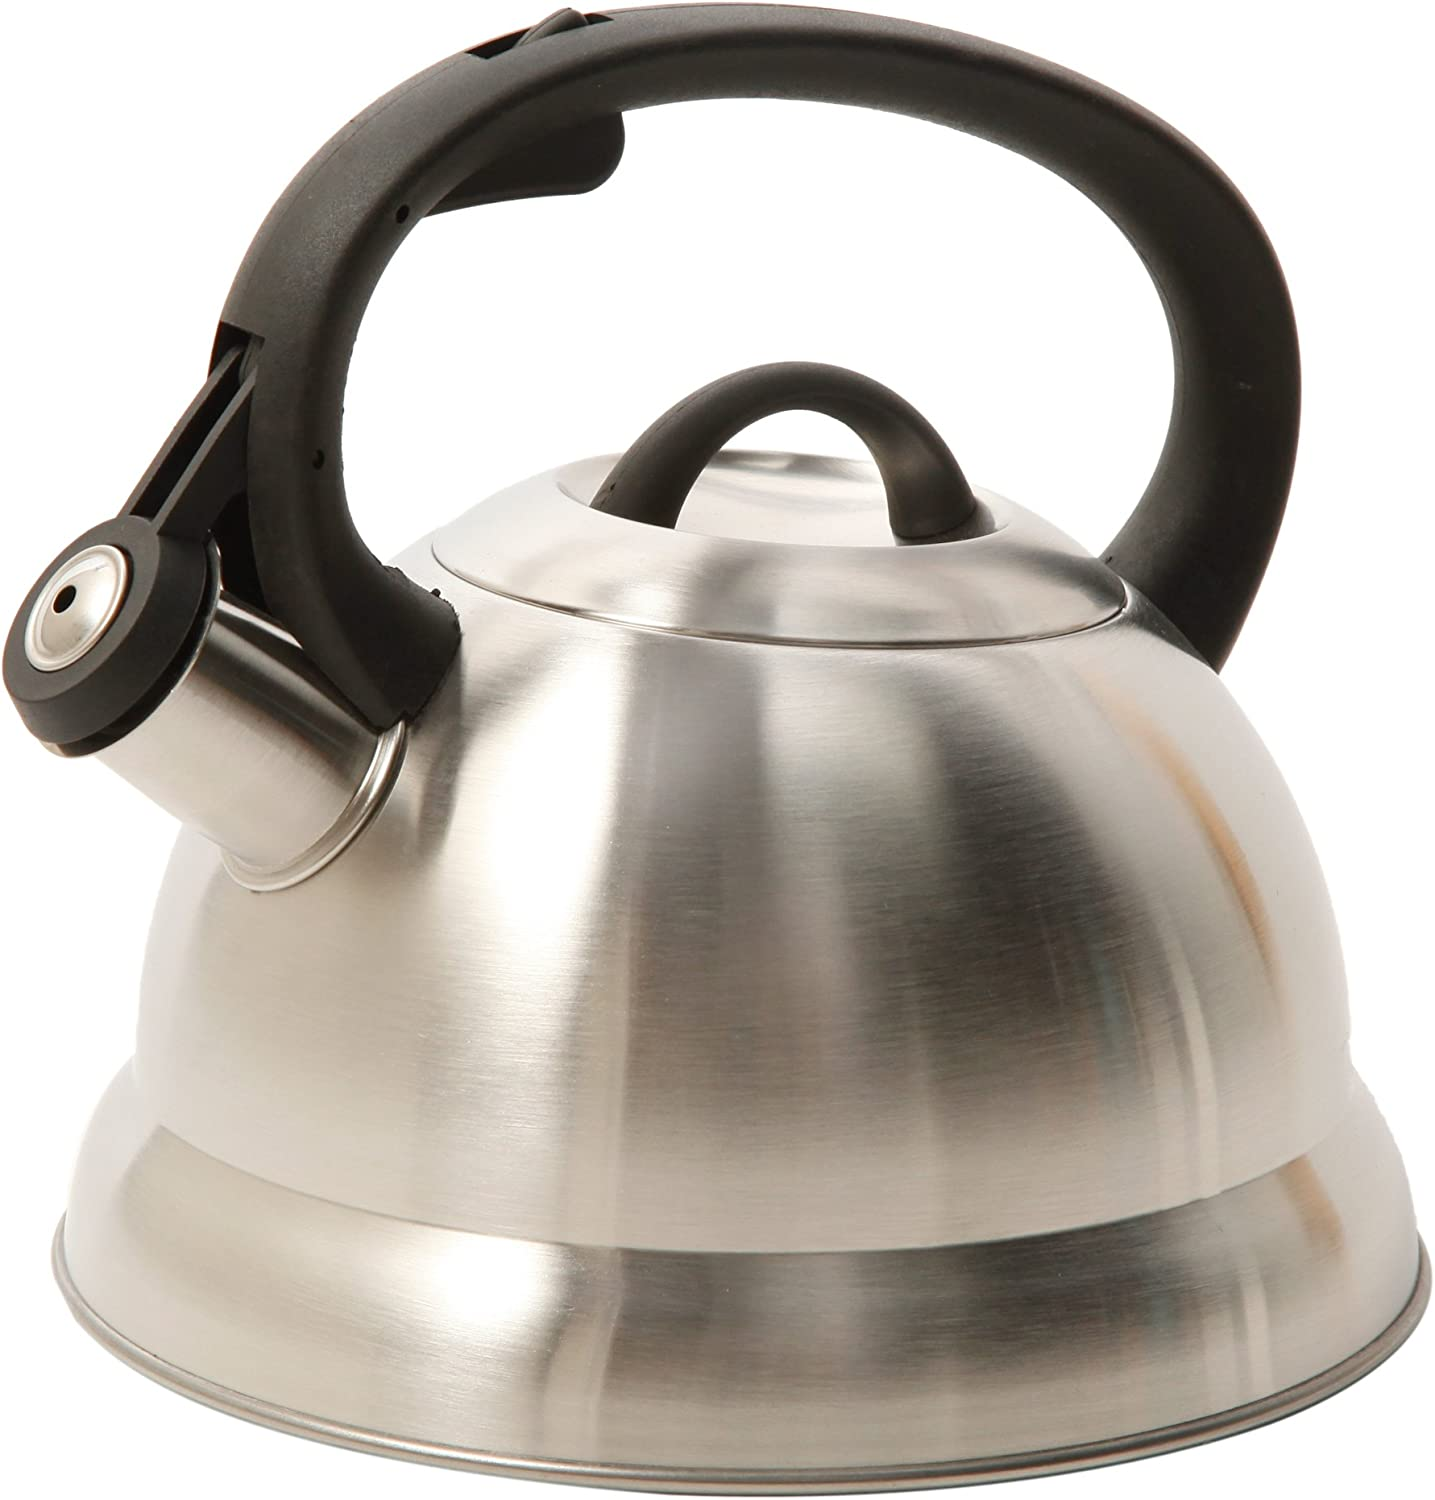 Mr. Coffee Flintshire Whistling Tea Kettle, 1.75-Quart, Stainless steel